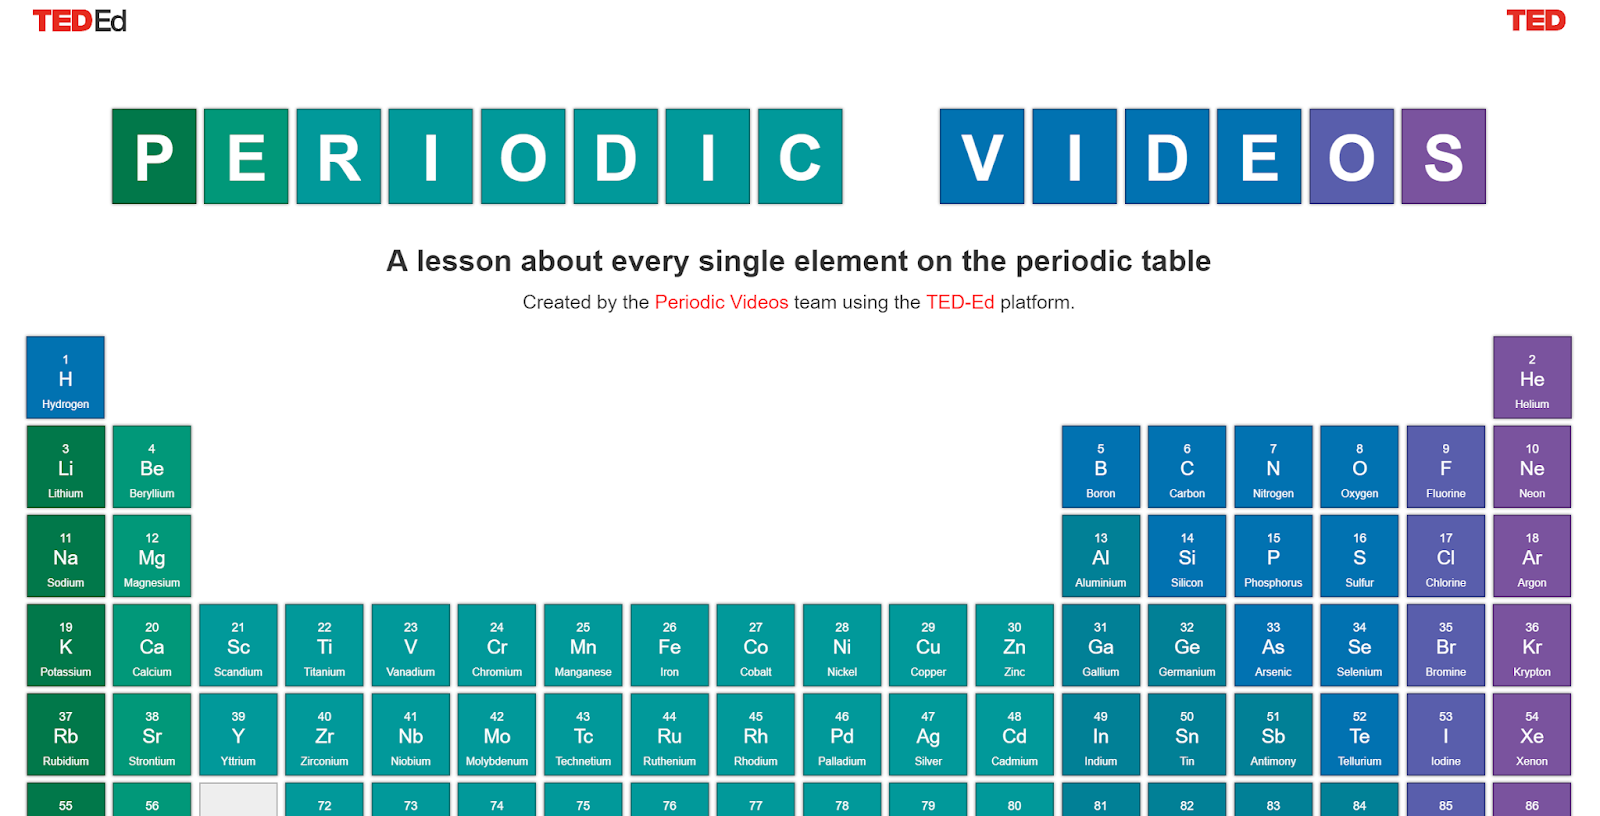 Free technology for teachers ted ed lessons about every element on for years i have referred readers to the university of nottinghams periodic table of videos that table provides a video about every element that is in the urtaz Gallery